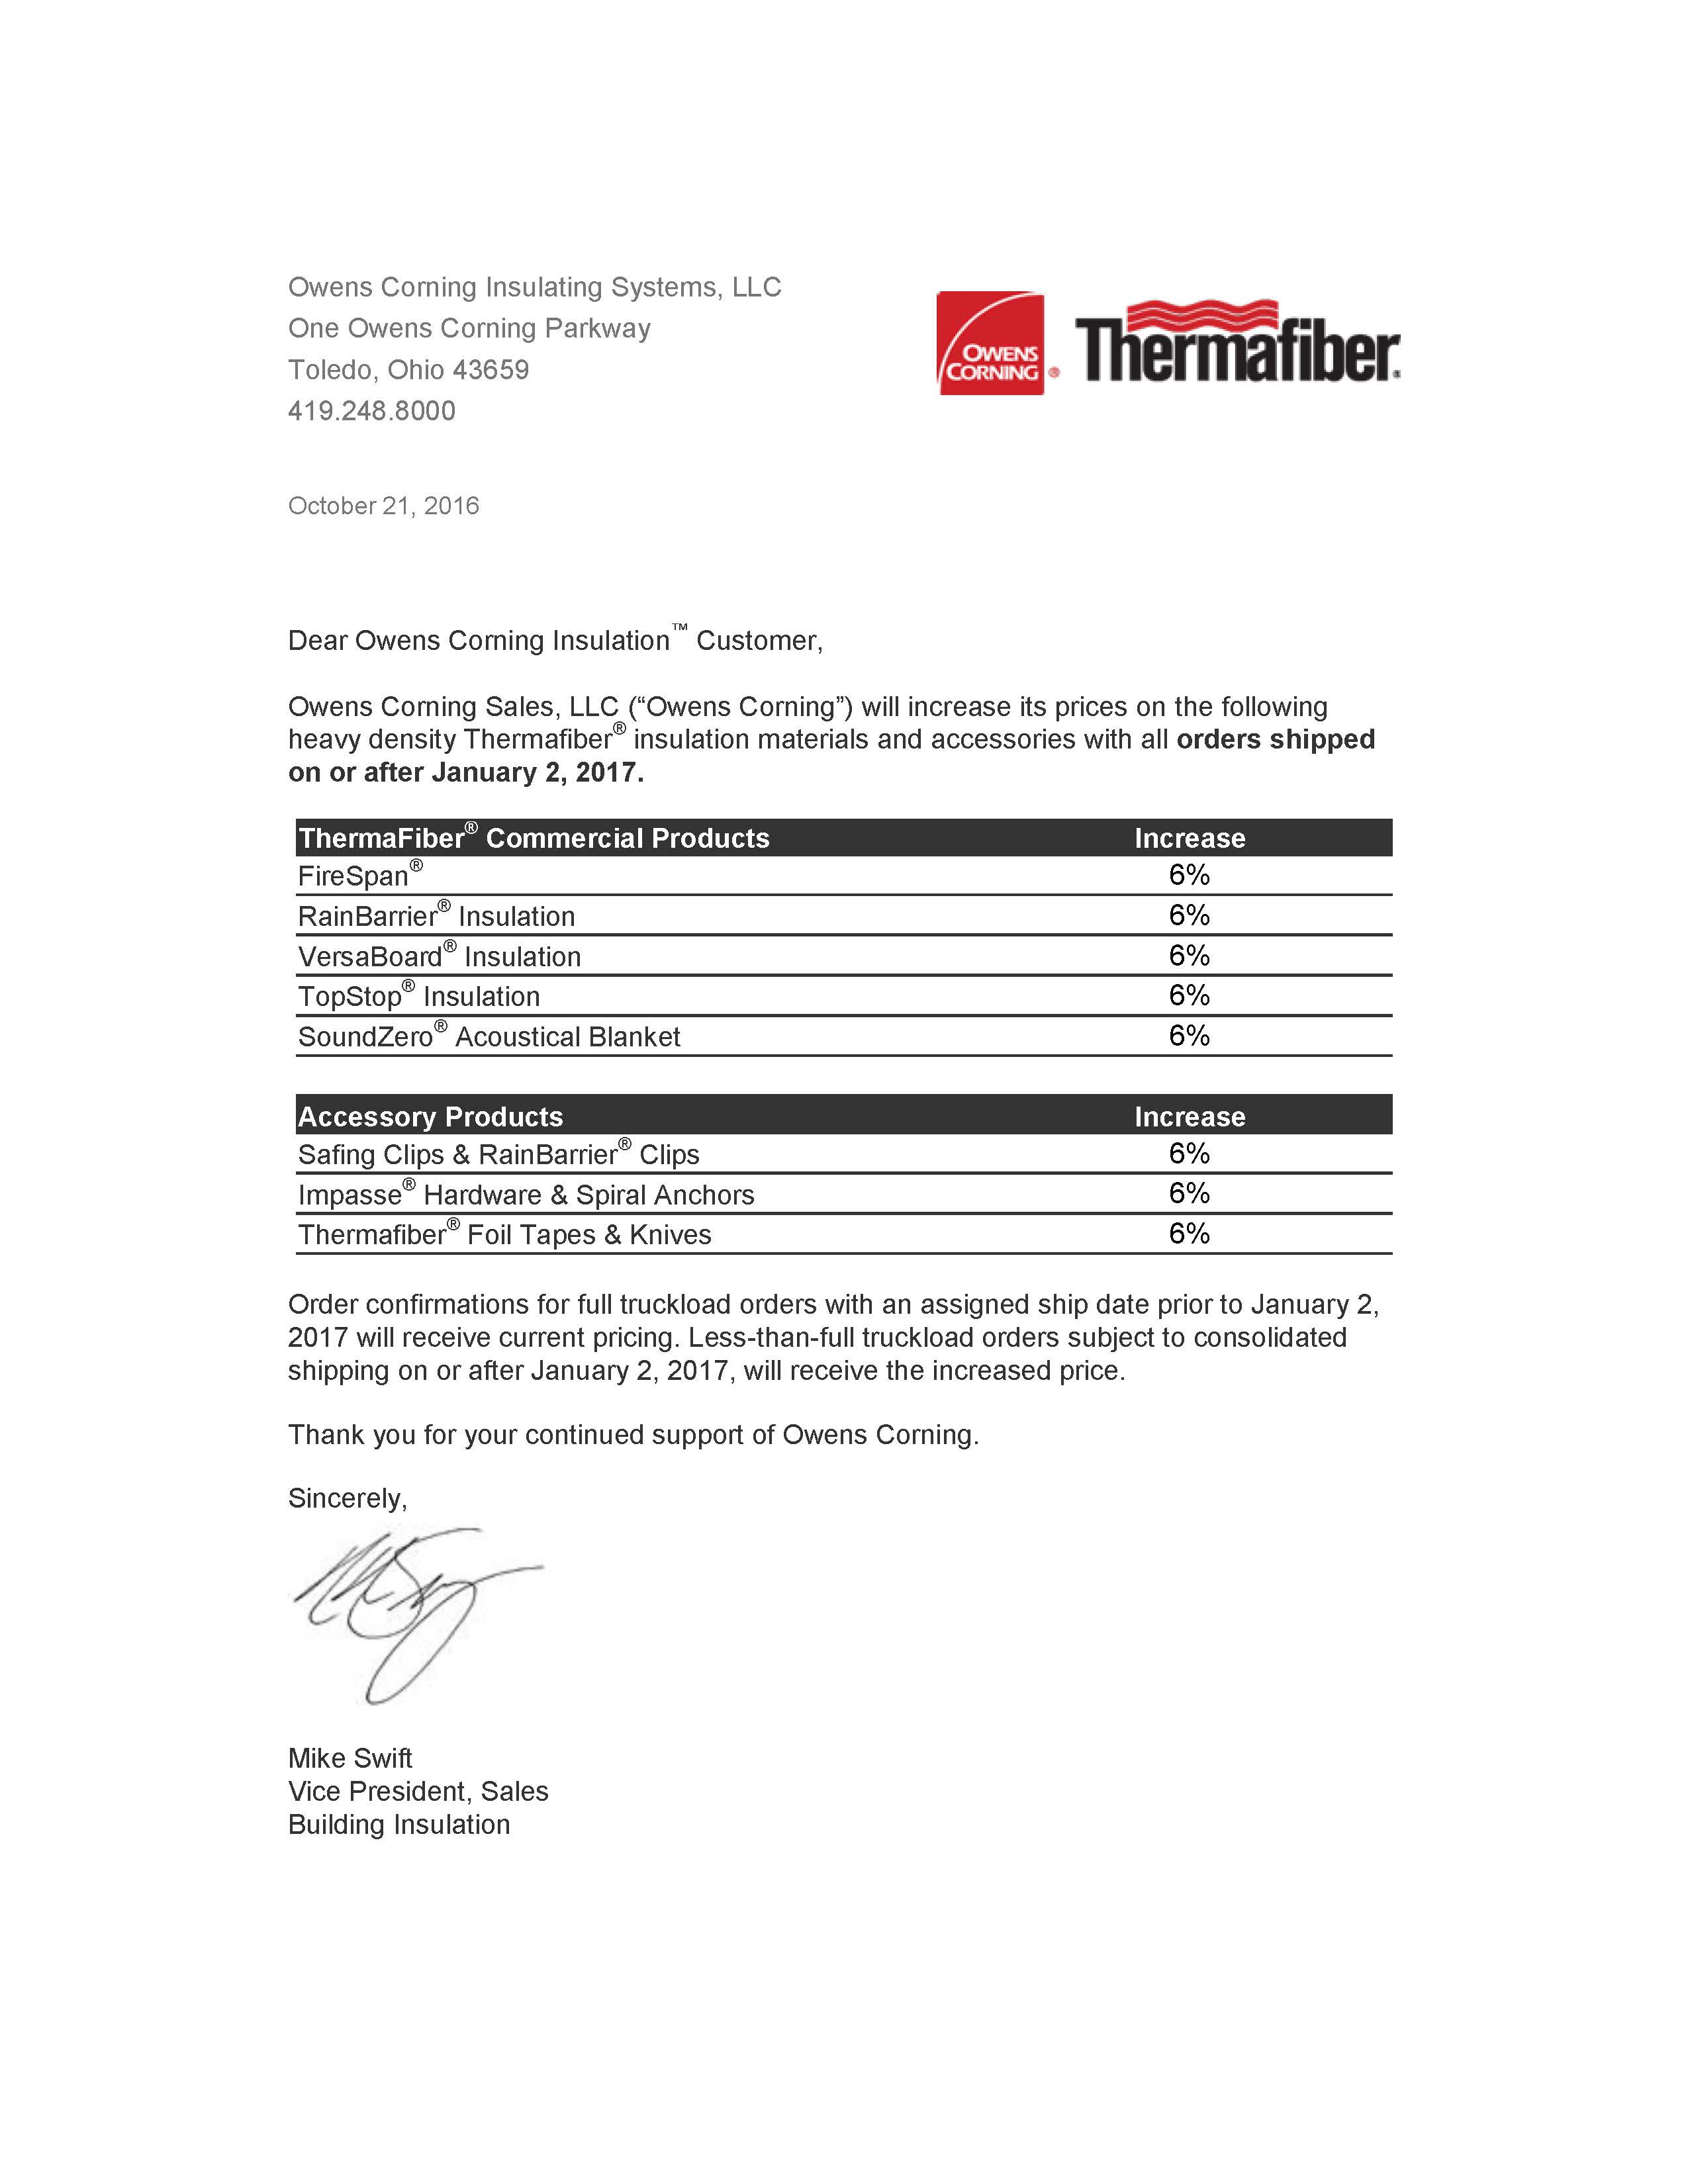 Thermafiber six percent price increase effective january 2 for Thermafiber insulation prices